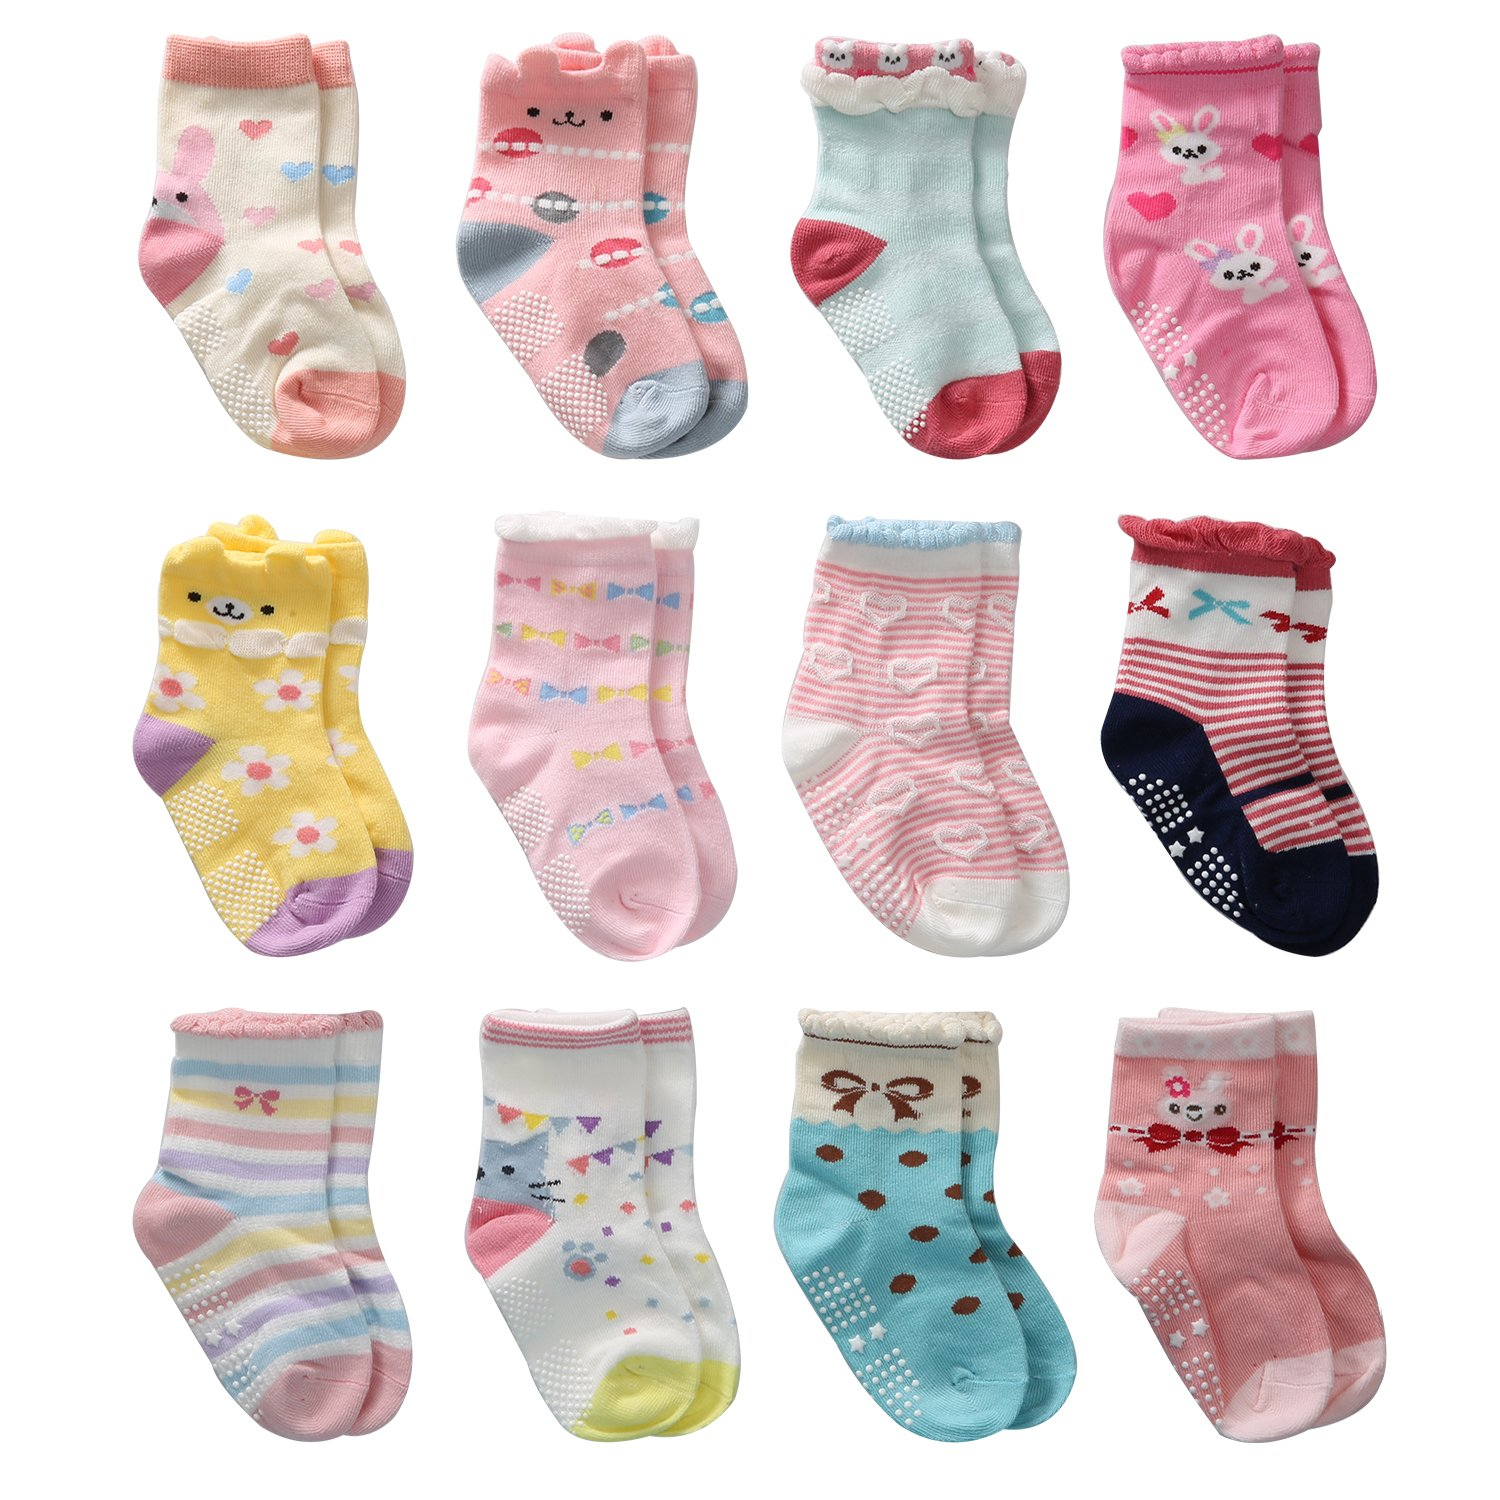 12 Pairs Toddler Girl Non Skid Socks Cute Cotton with, 12 Pairs, Size 3-5 Years by Cottock